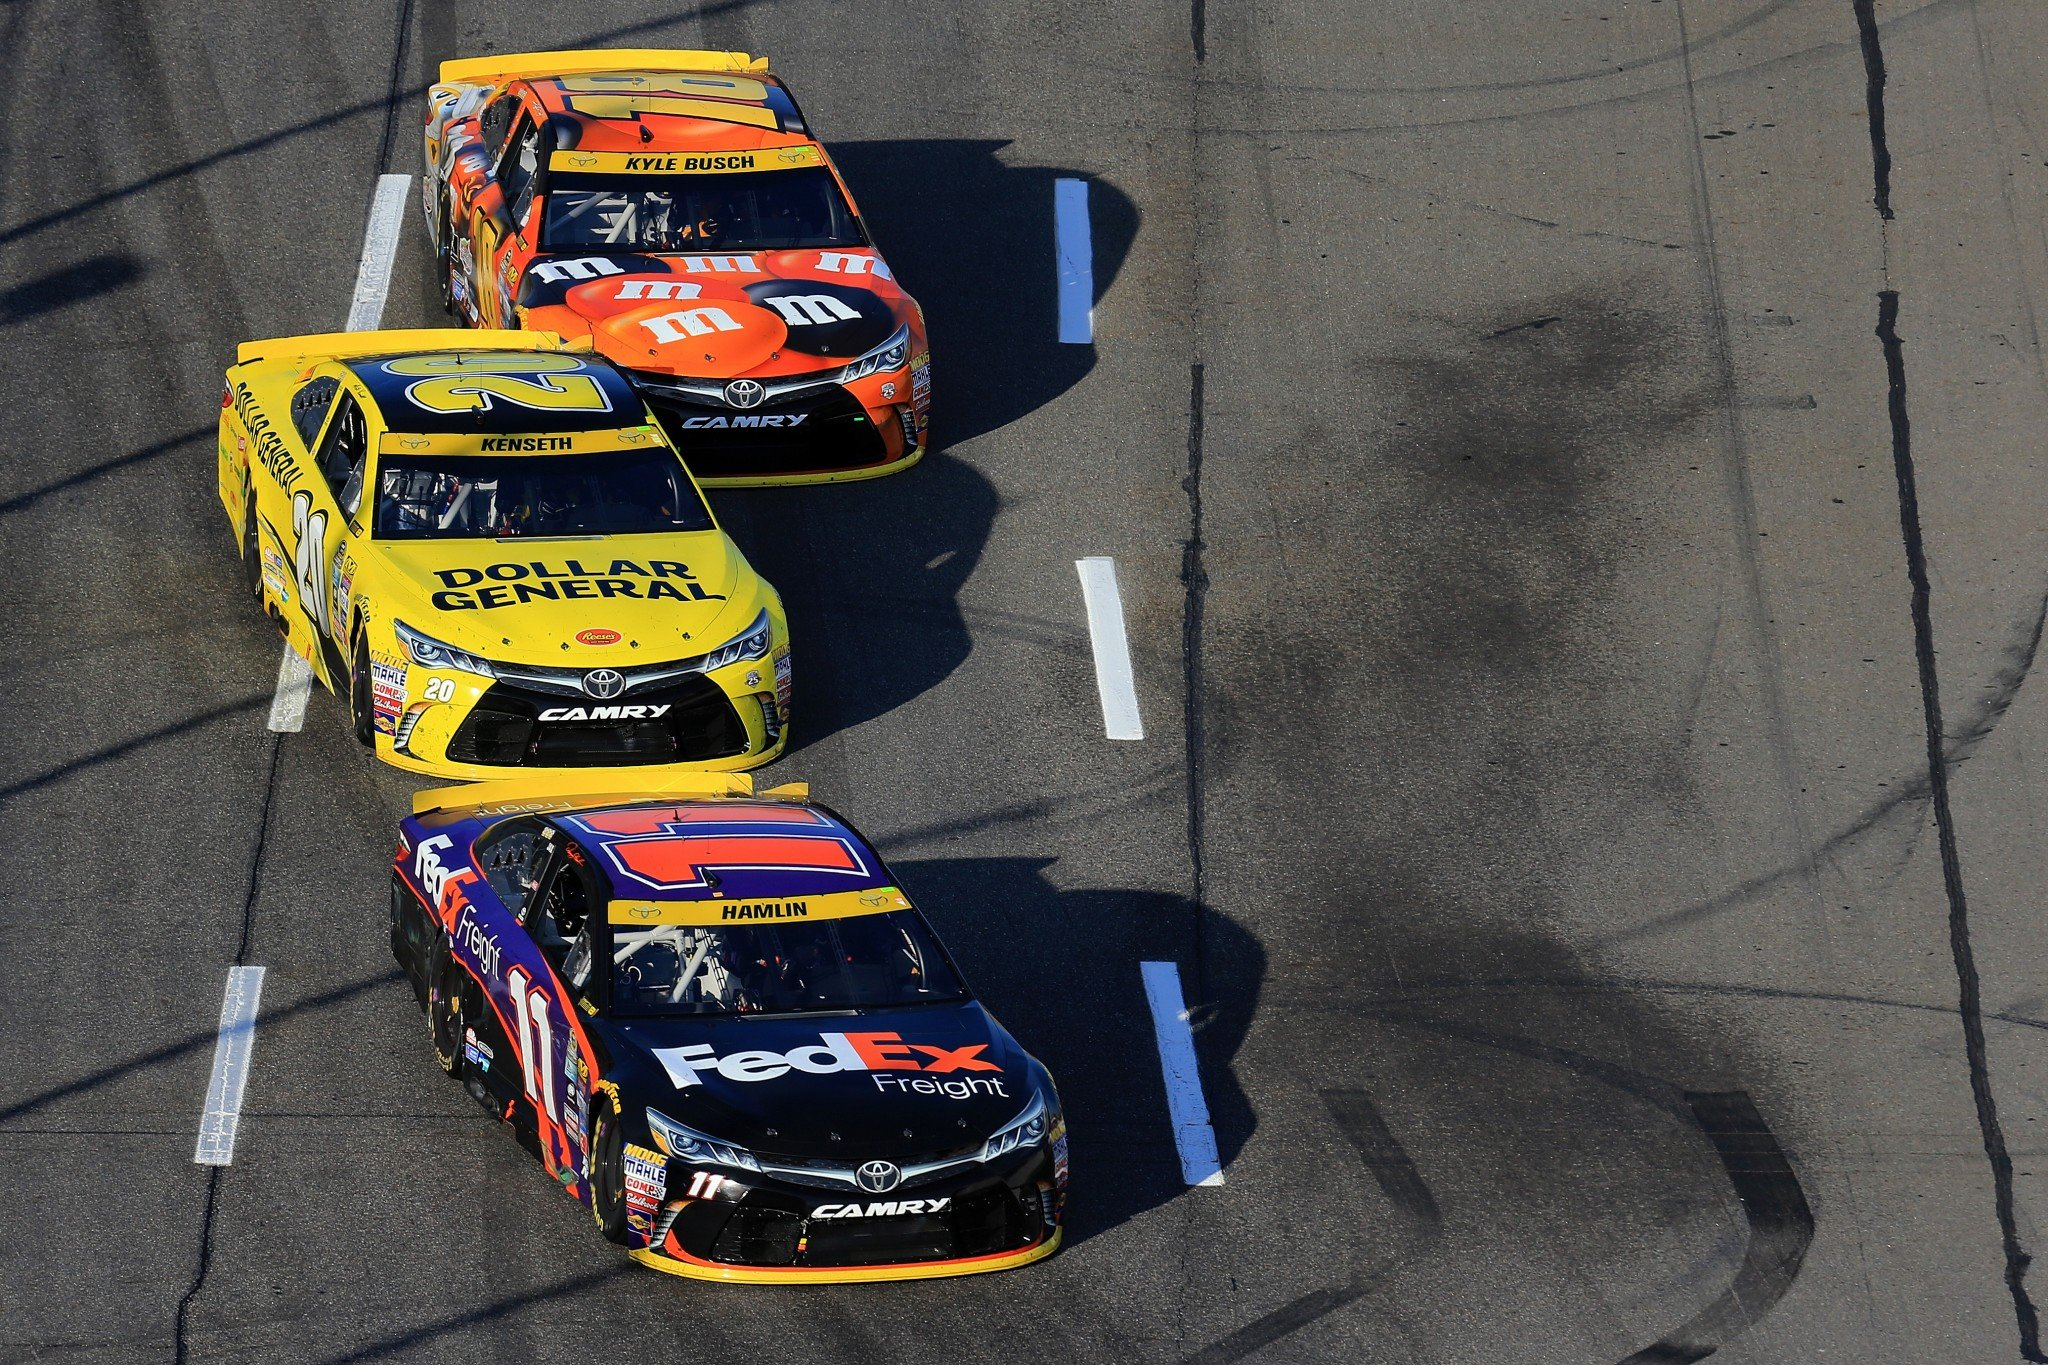 Bowman wins pole at Phoenix as Chase drivers seek more speed